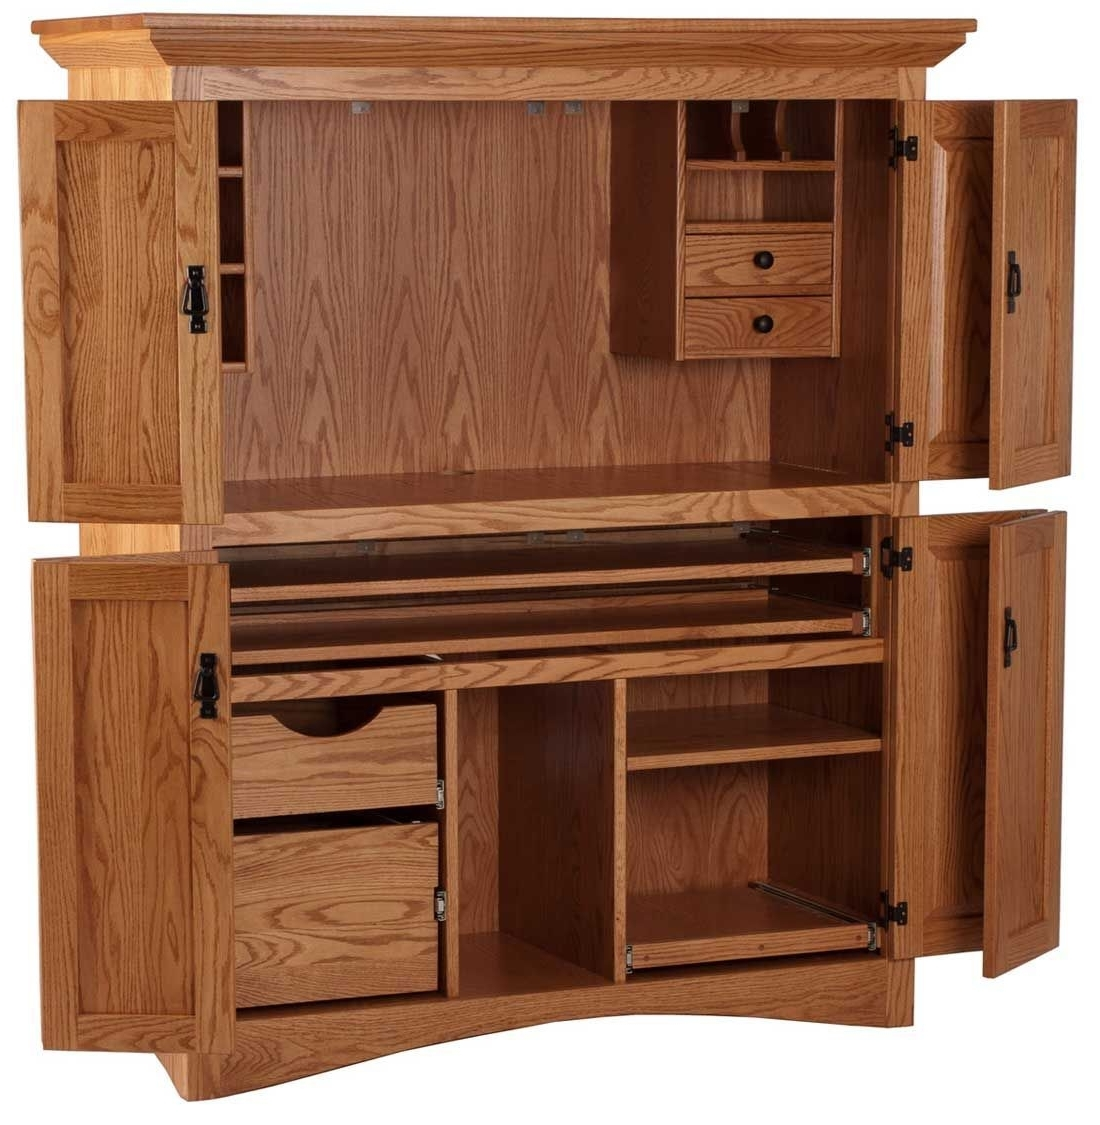 Awesome Home Office Solid Wood Computer Desk For Of Trends And On For 2019 Solid Wood Computer Desks (View 14 of 20)